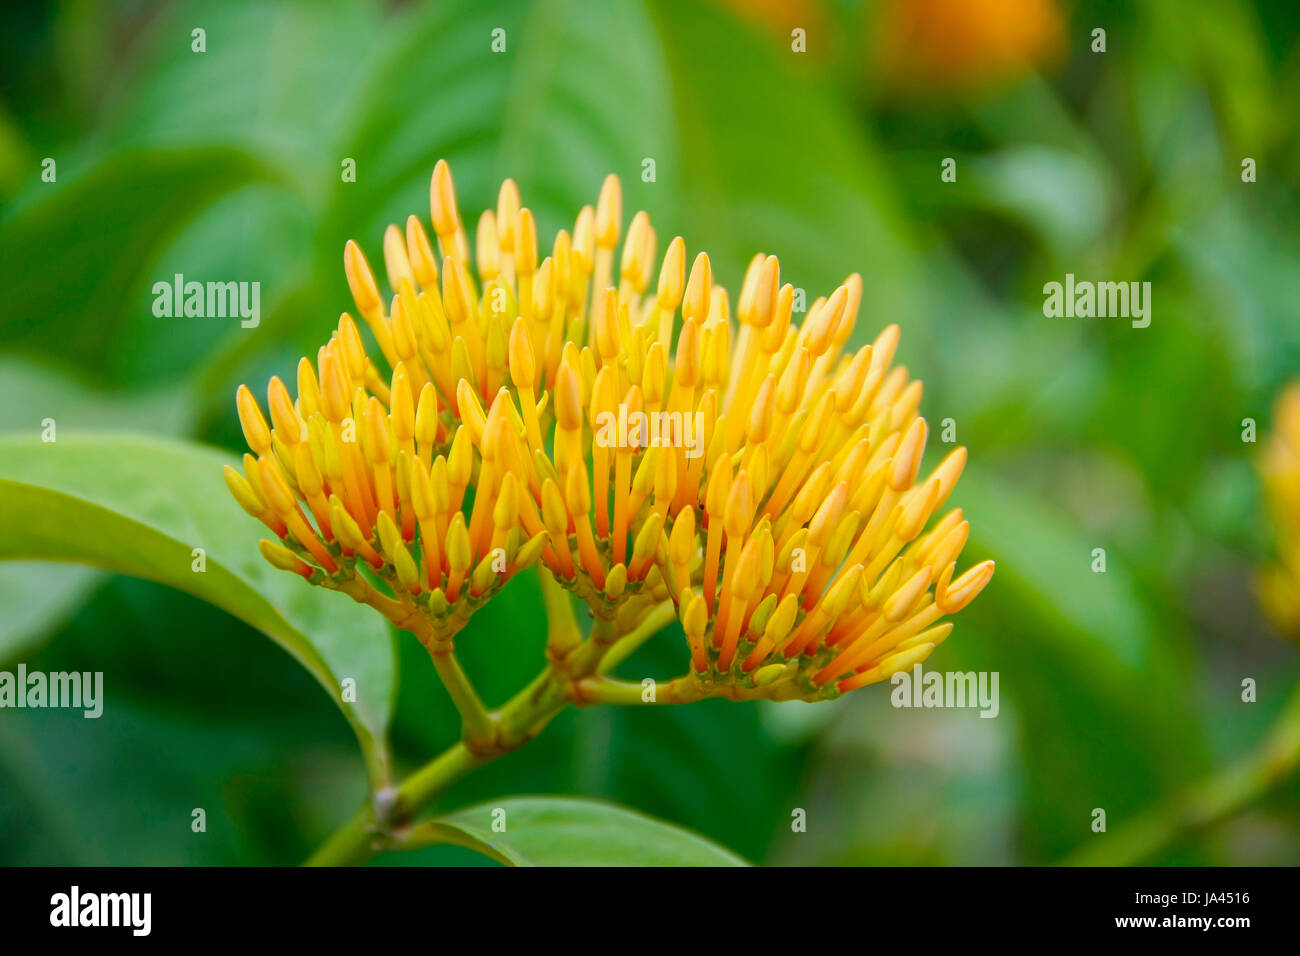 West indian jasmine stock photos west indian jasmine stock images beautiful bouquet orange ixoras flower west indian jasmine flower on its plant stock image izmirmasajfo